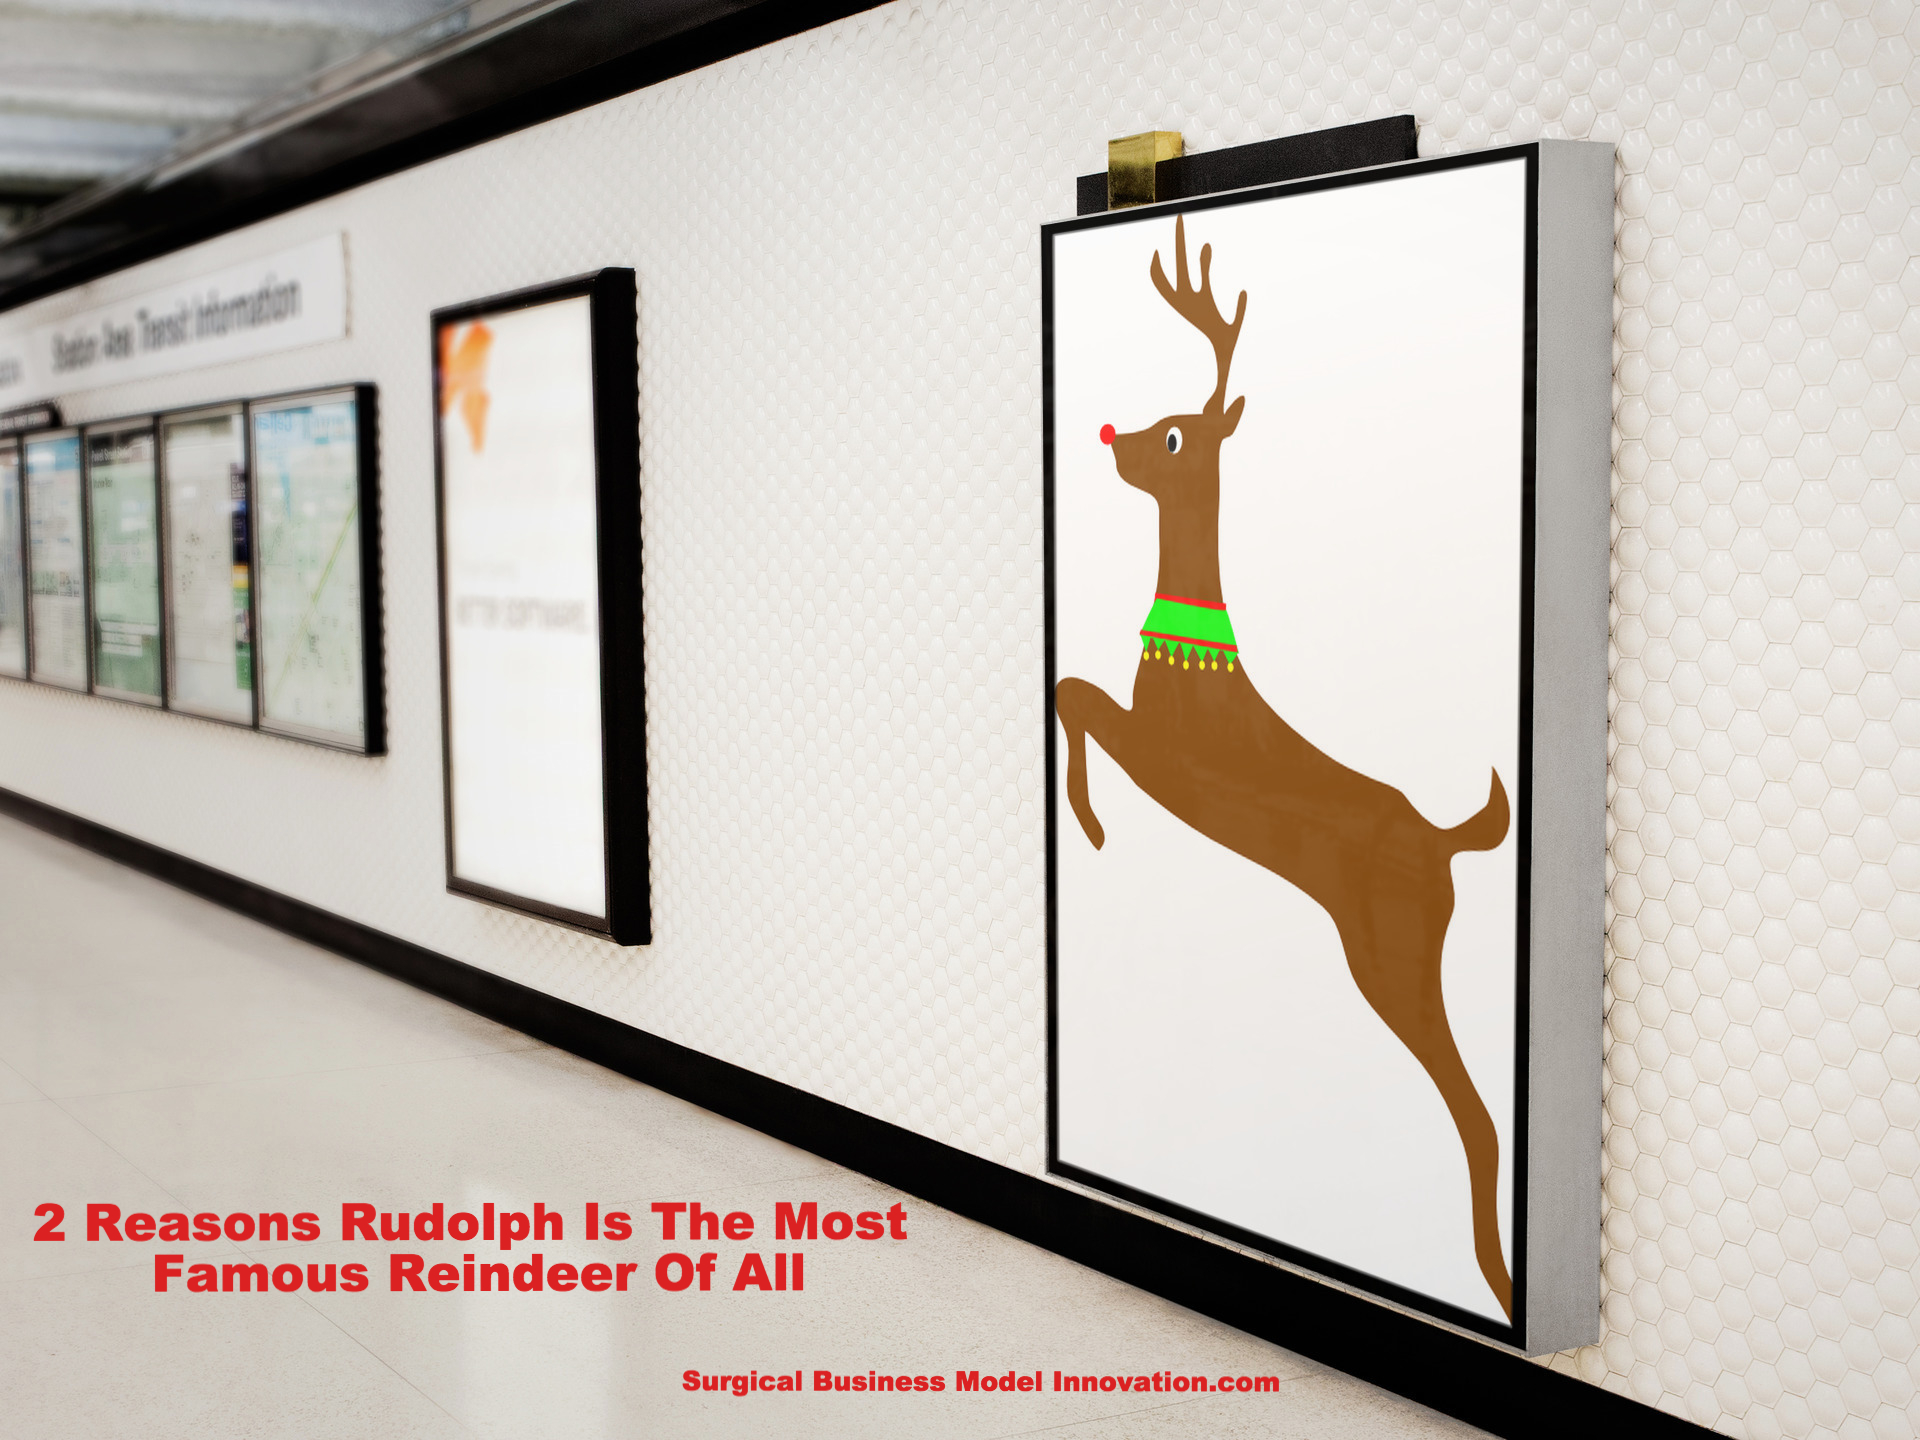 2 Reasons Rudolph Is The Most Famous Reindeer Of All